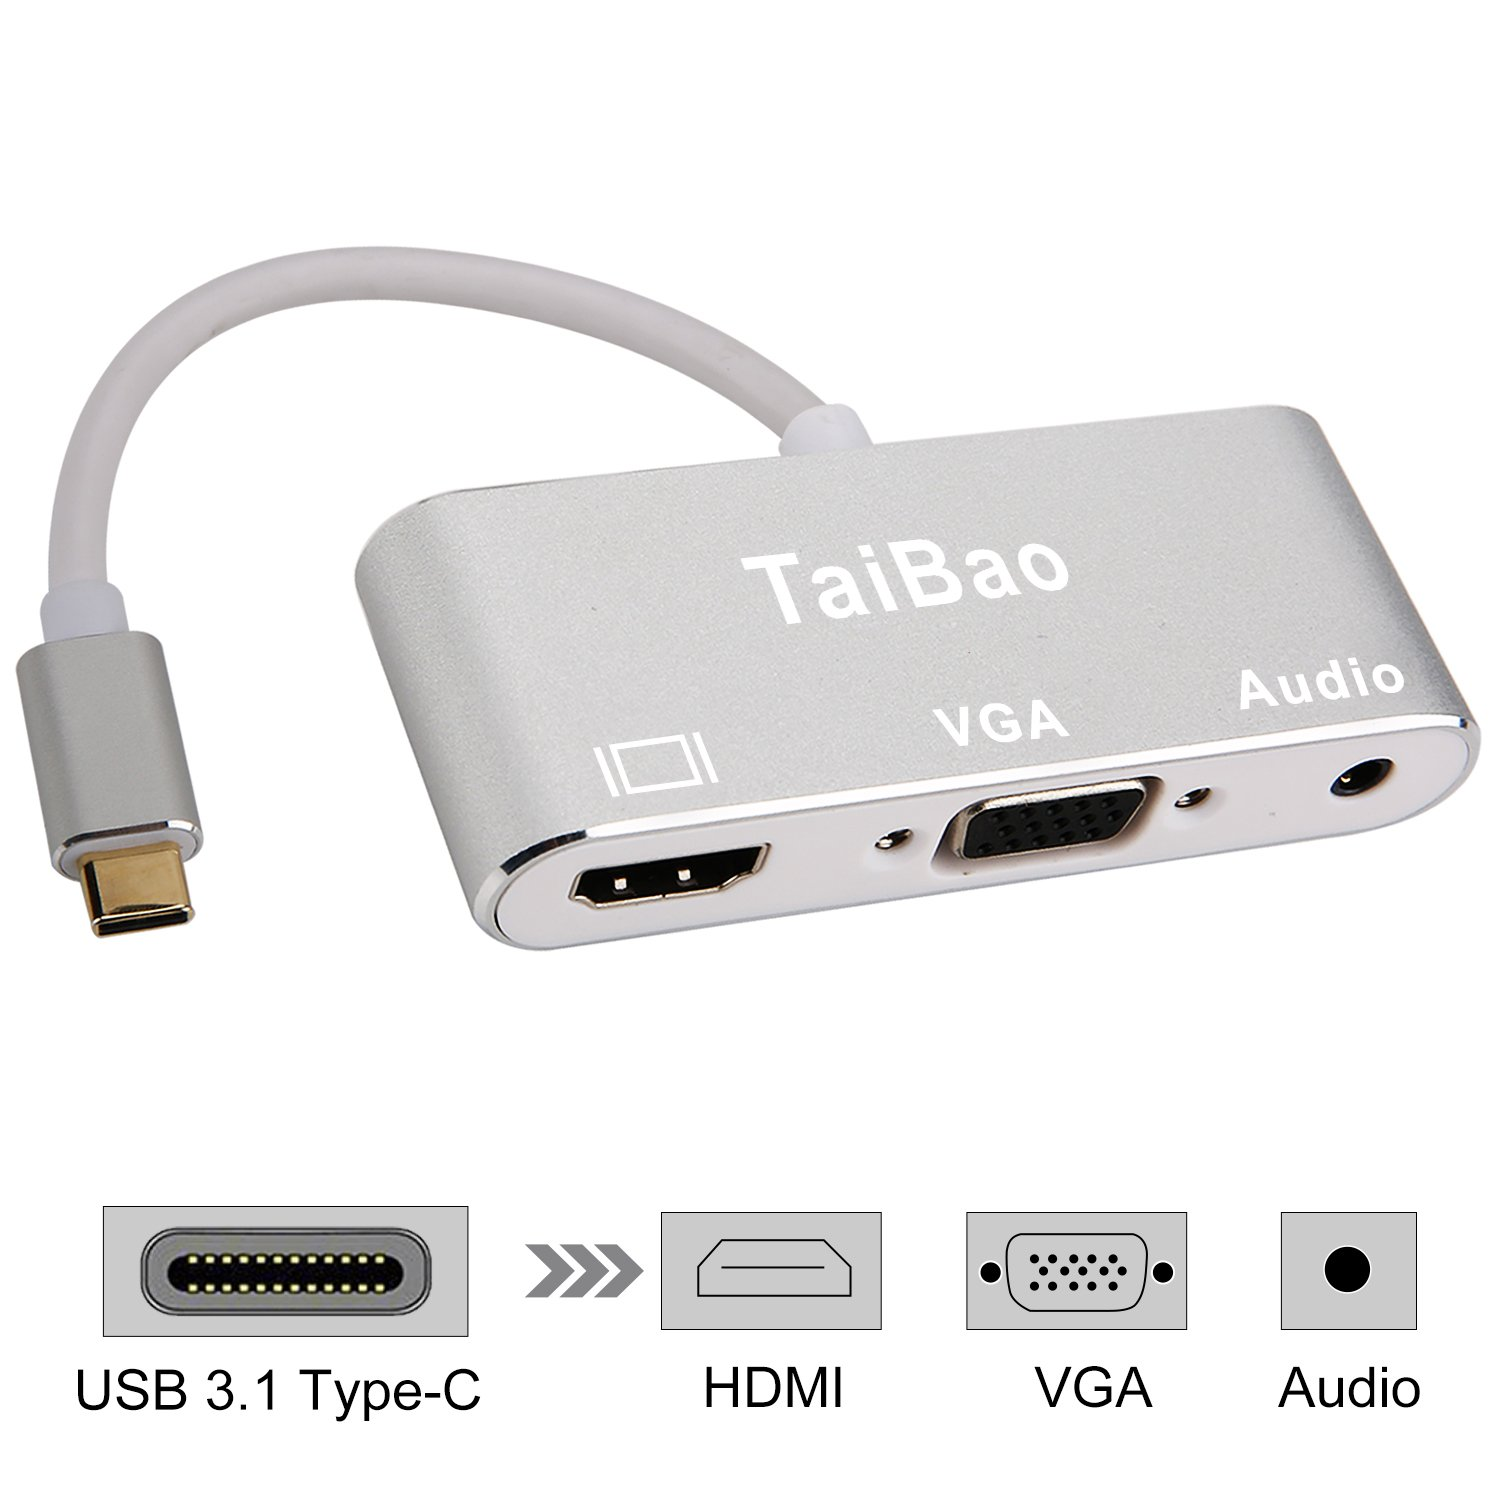 USB C to HDMI VGA Audio Adapter, TaiBao USB 3.1 Type C to HDMI 4K VGA 1080P Dual Screen Display Converter for MacBook Pro 2017 / Samsung Galaxy S8 / S8 Plus / S9 / Note 8